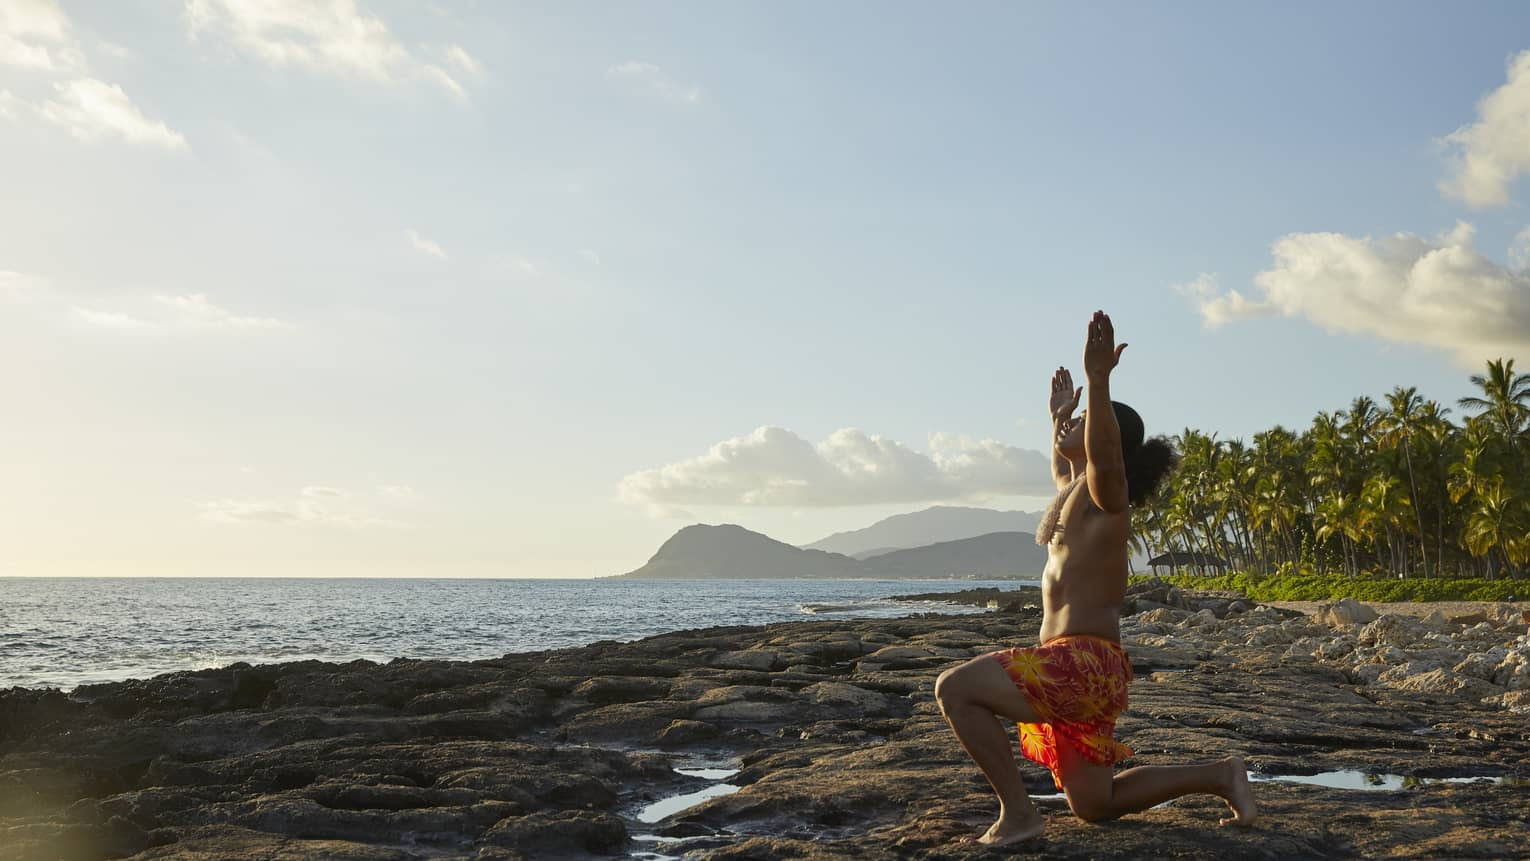 A morning routine on oceanside rocks in Oahu